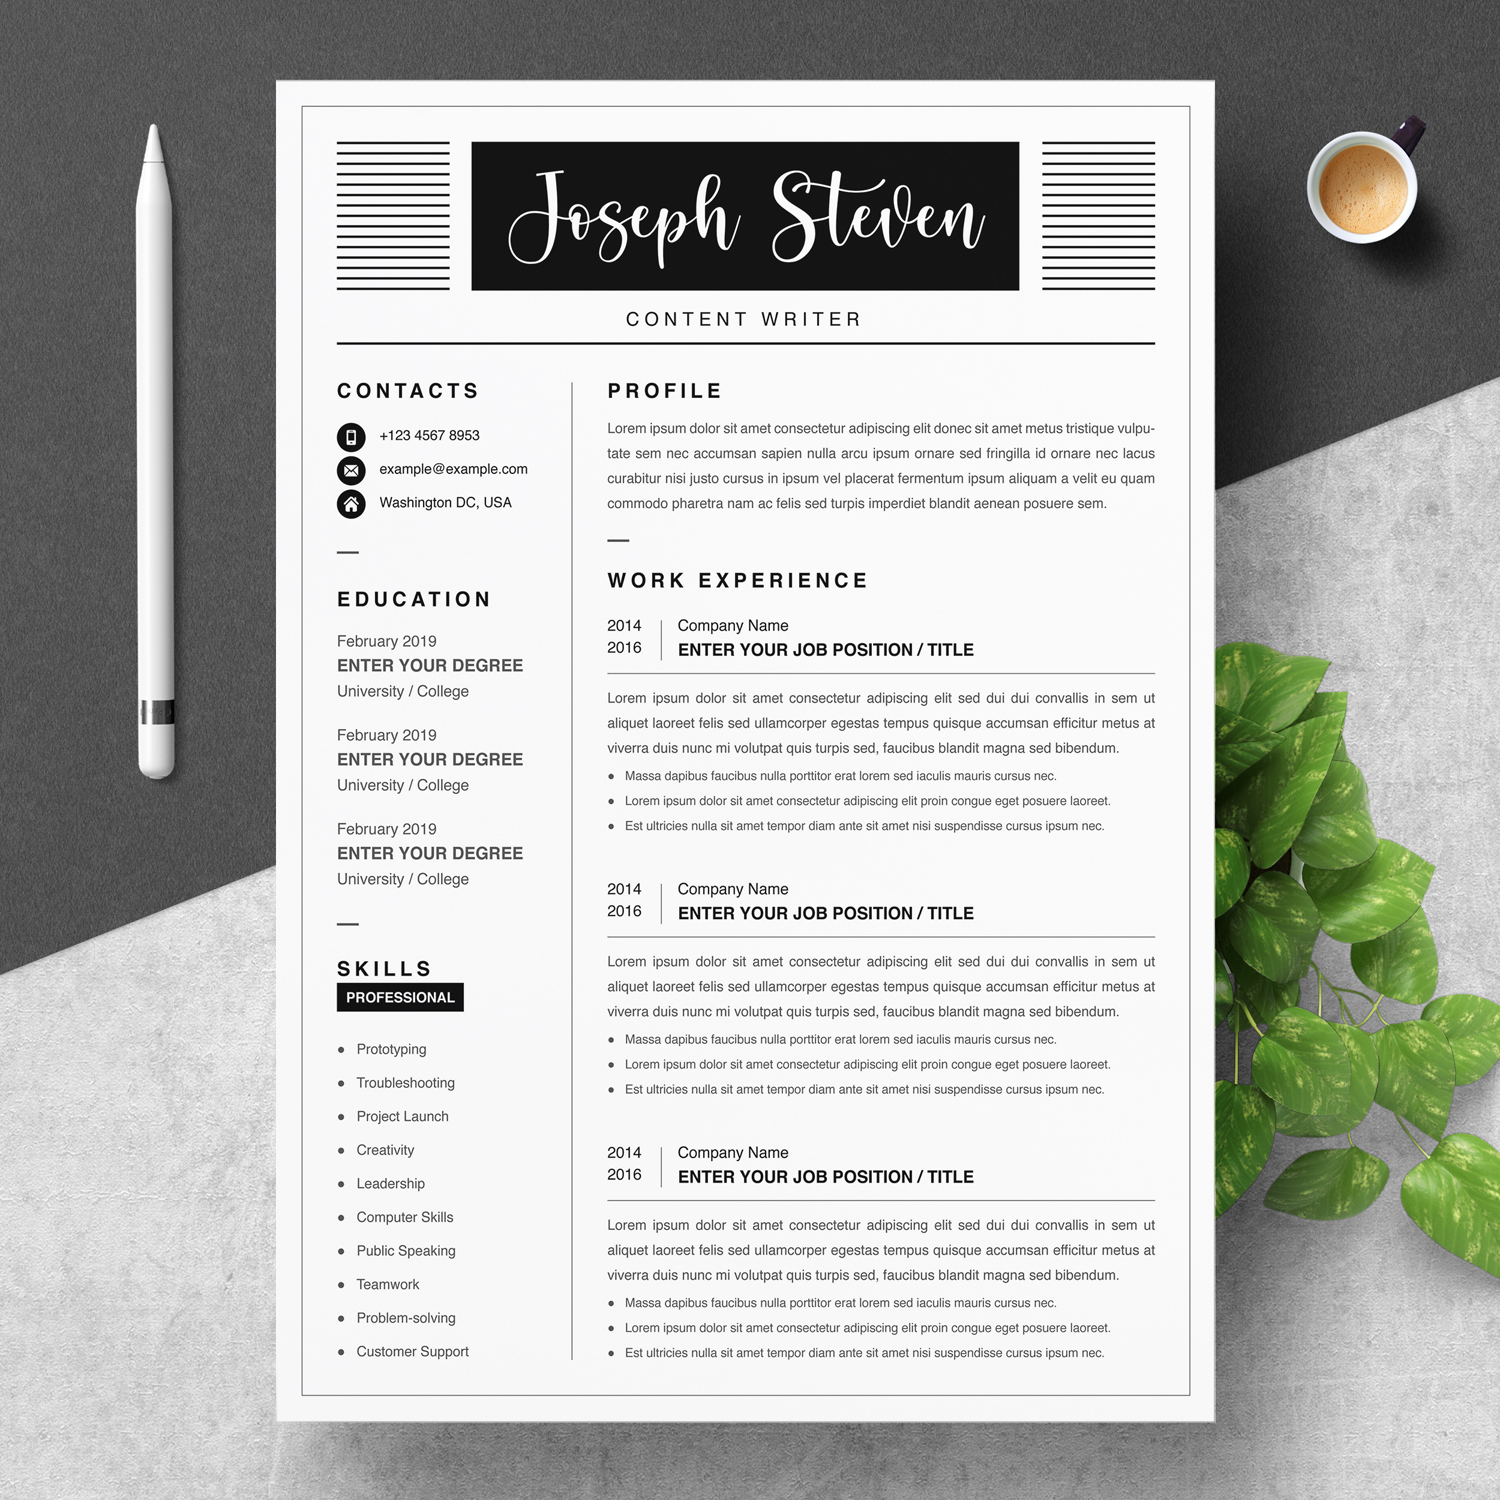 Creative Writer Resume 2021